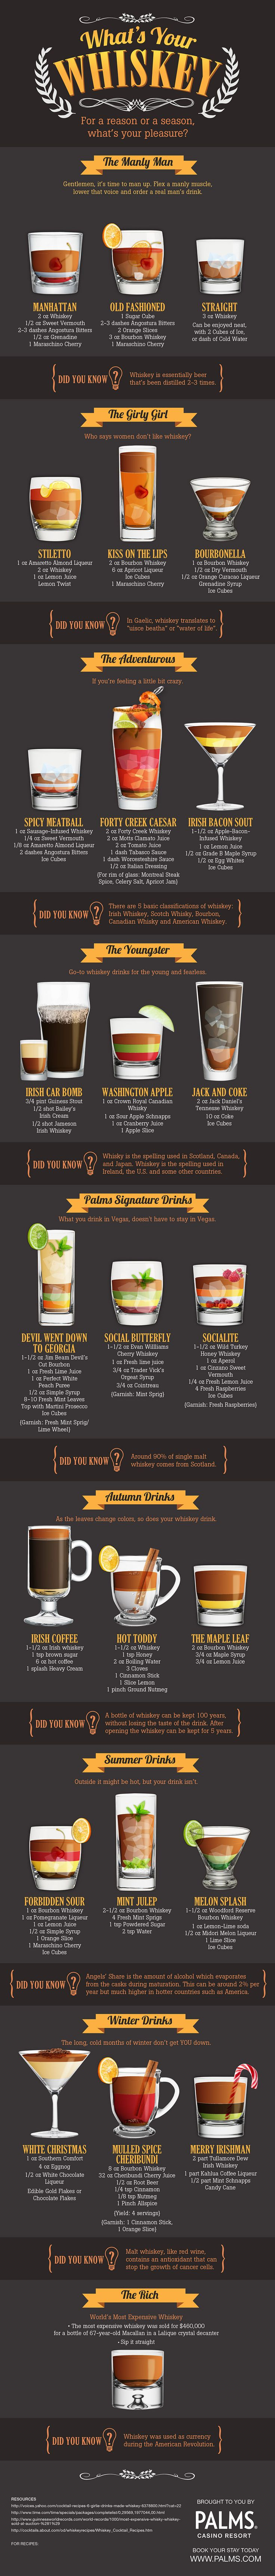 What's your favorite whiskey drink? #infographic designed by #dezinegirl creative studio for IMI - Palms Casino {October 2013}